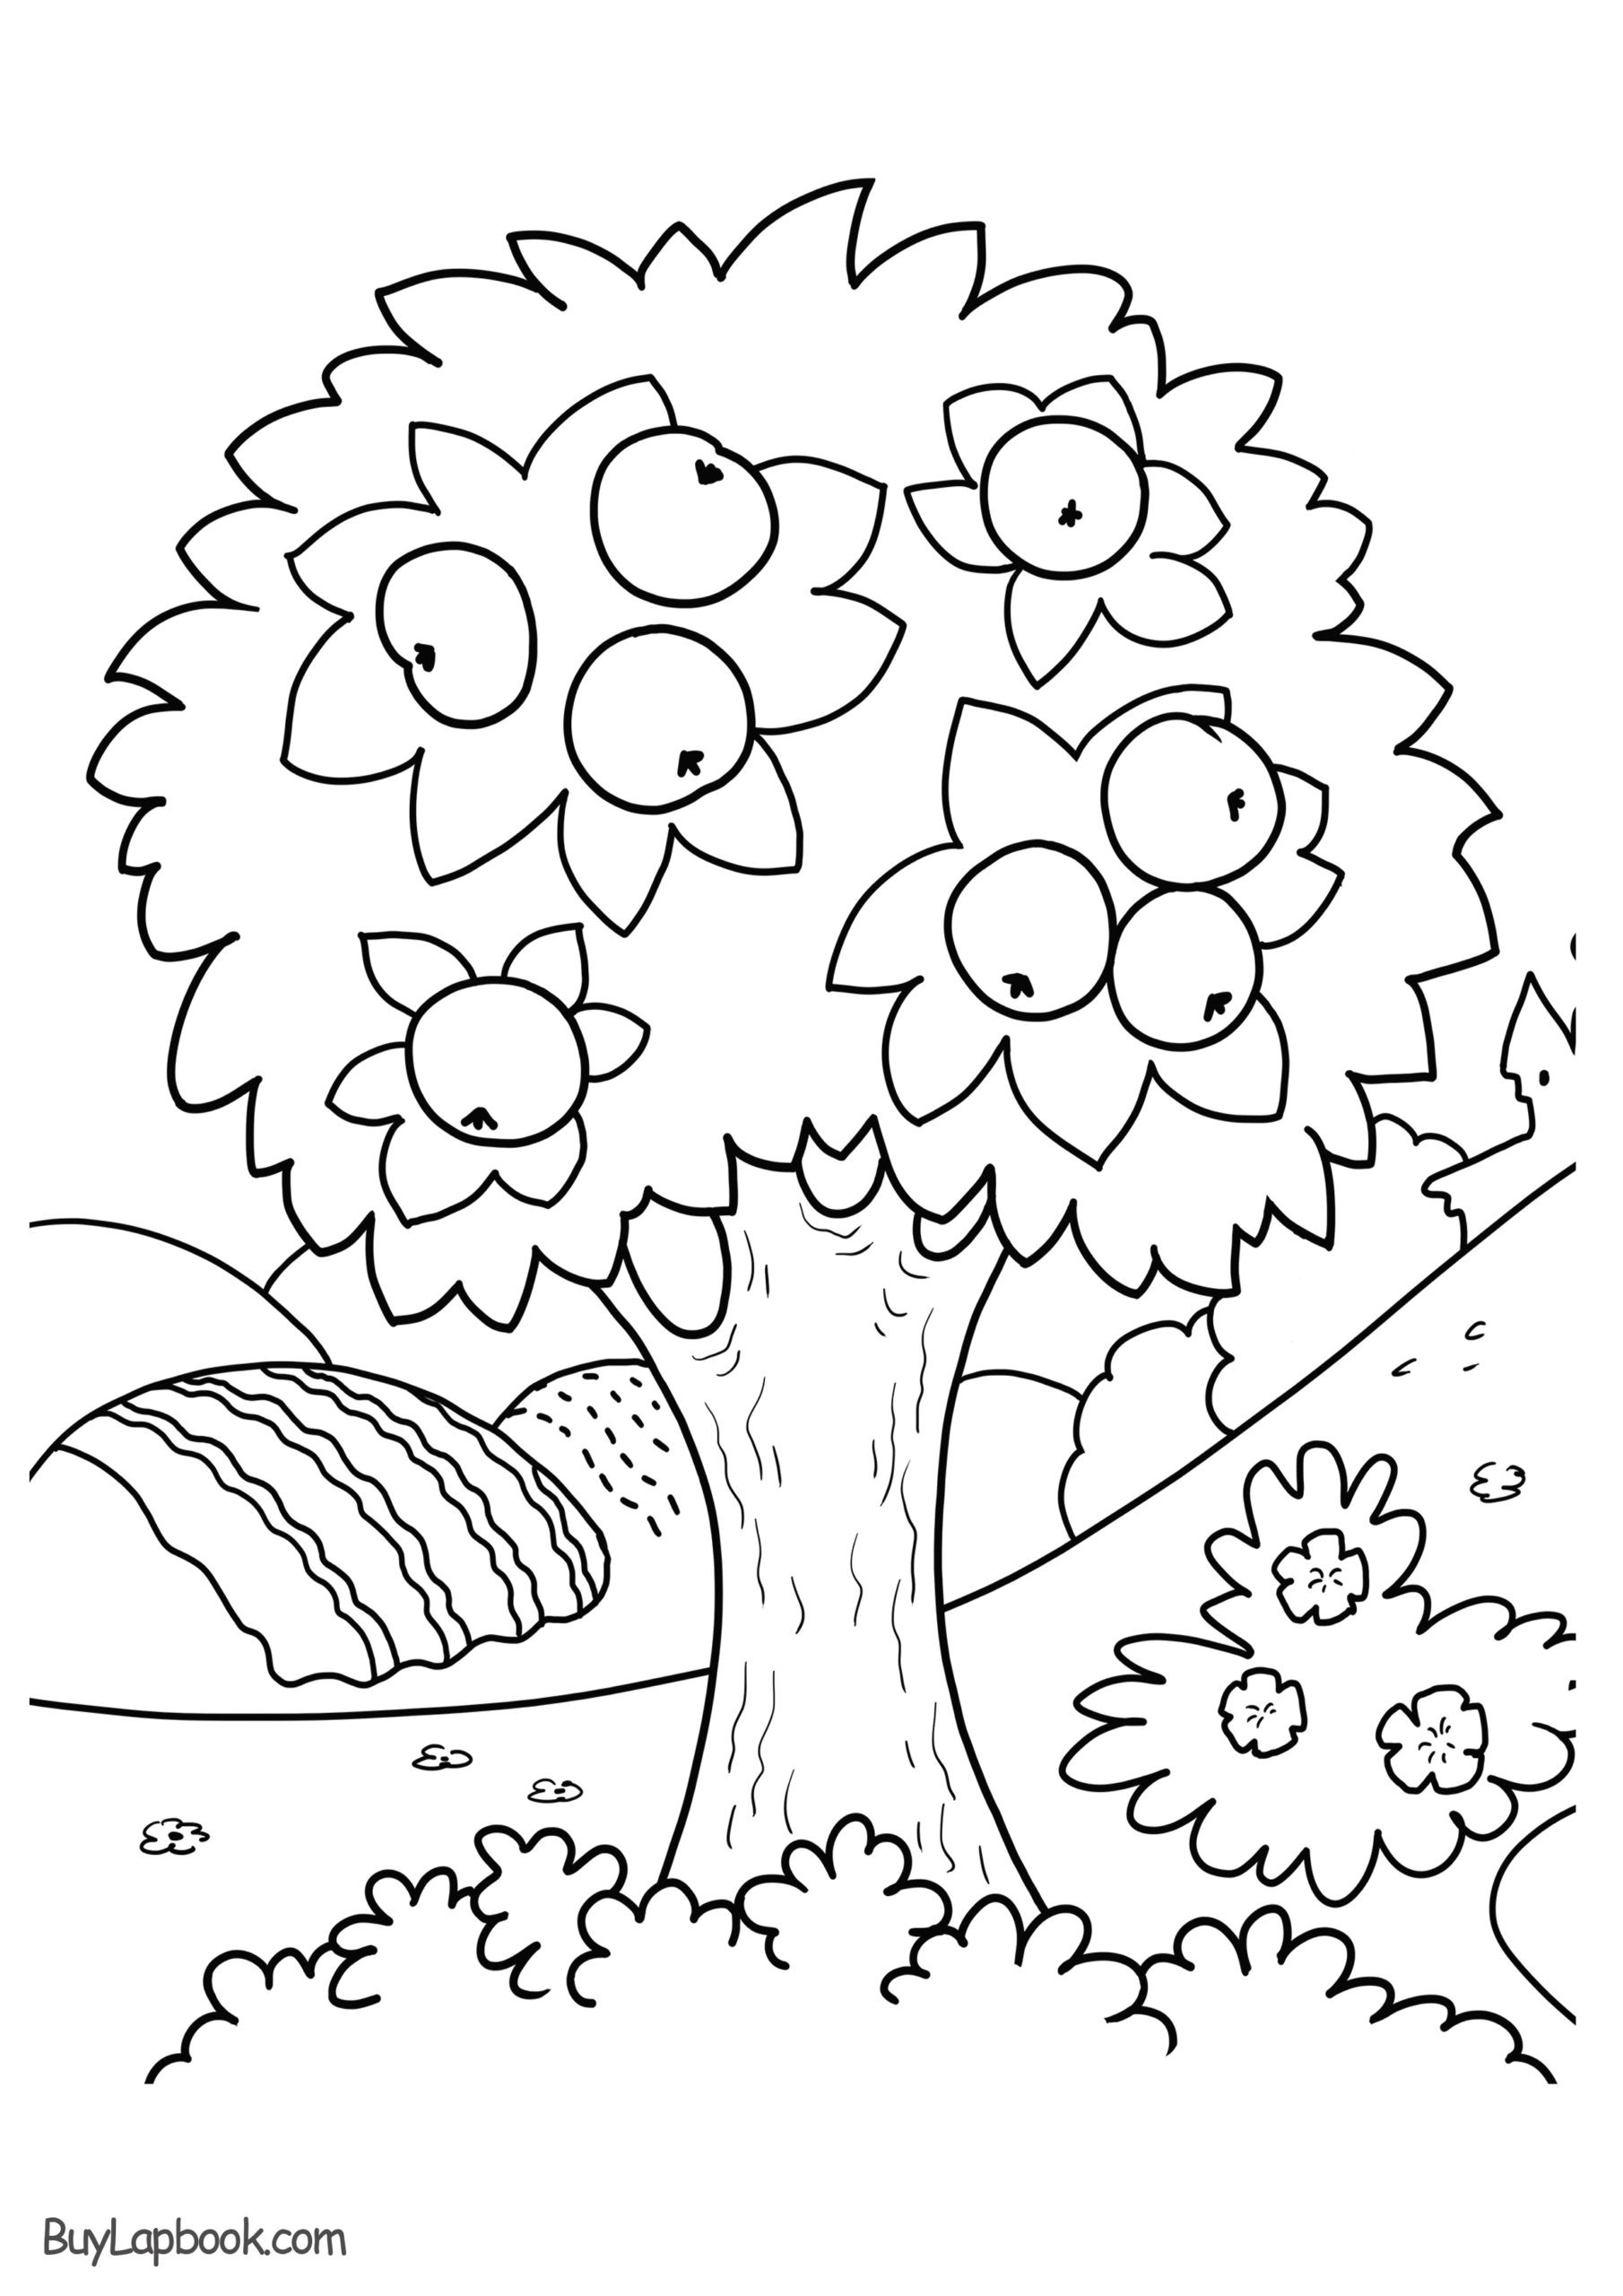 Seasons Worksheets for First Grade Four Seasons Coloring for Kindergarten Weather and Climate